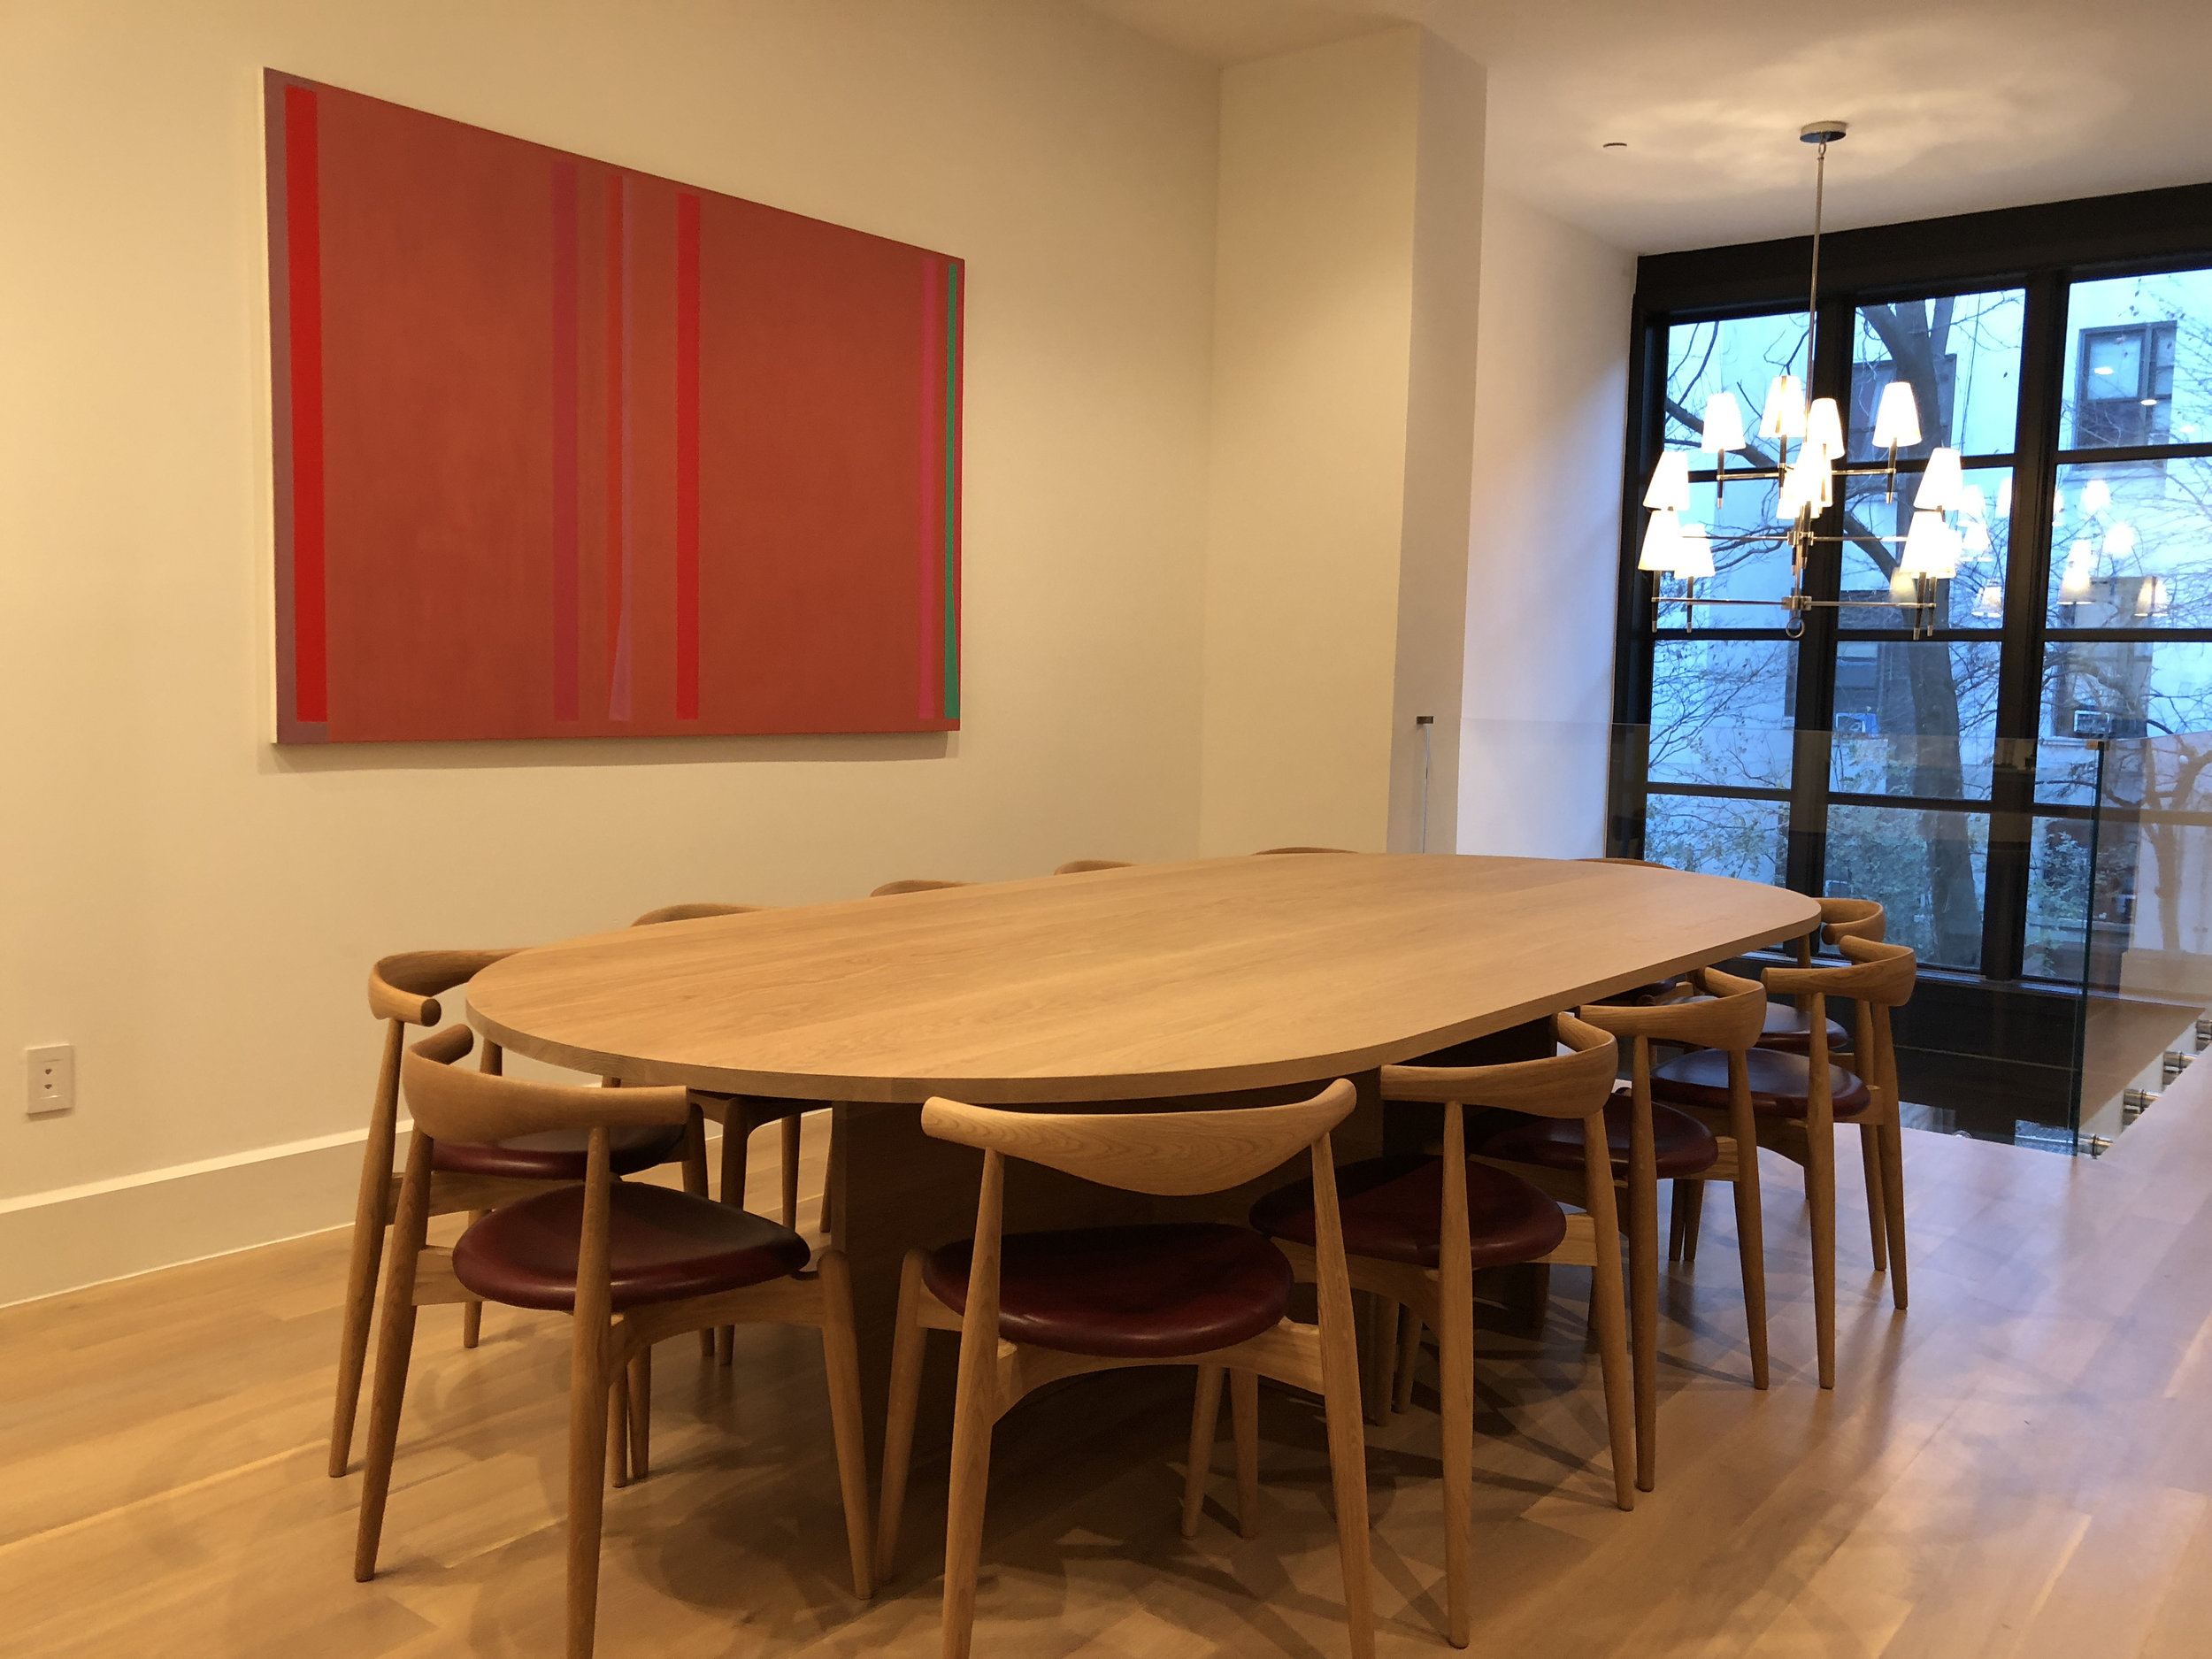 custom-oval-solid-white-oak-table-with-natural-oil-finish-10-feet-long-by-5-feet-wide-with-1.25-inch-thick-table-top-and-base.jpg